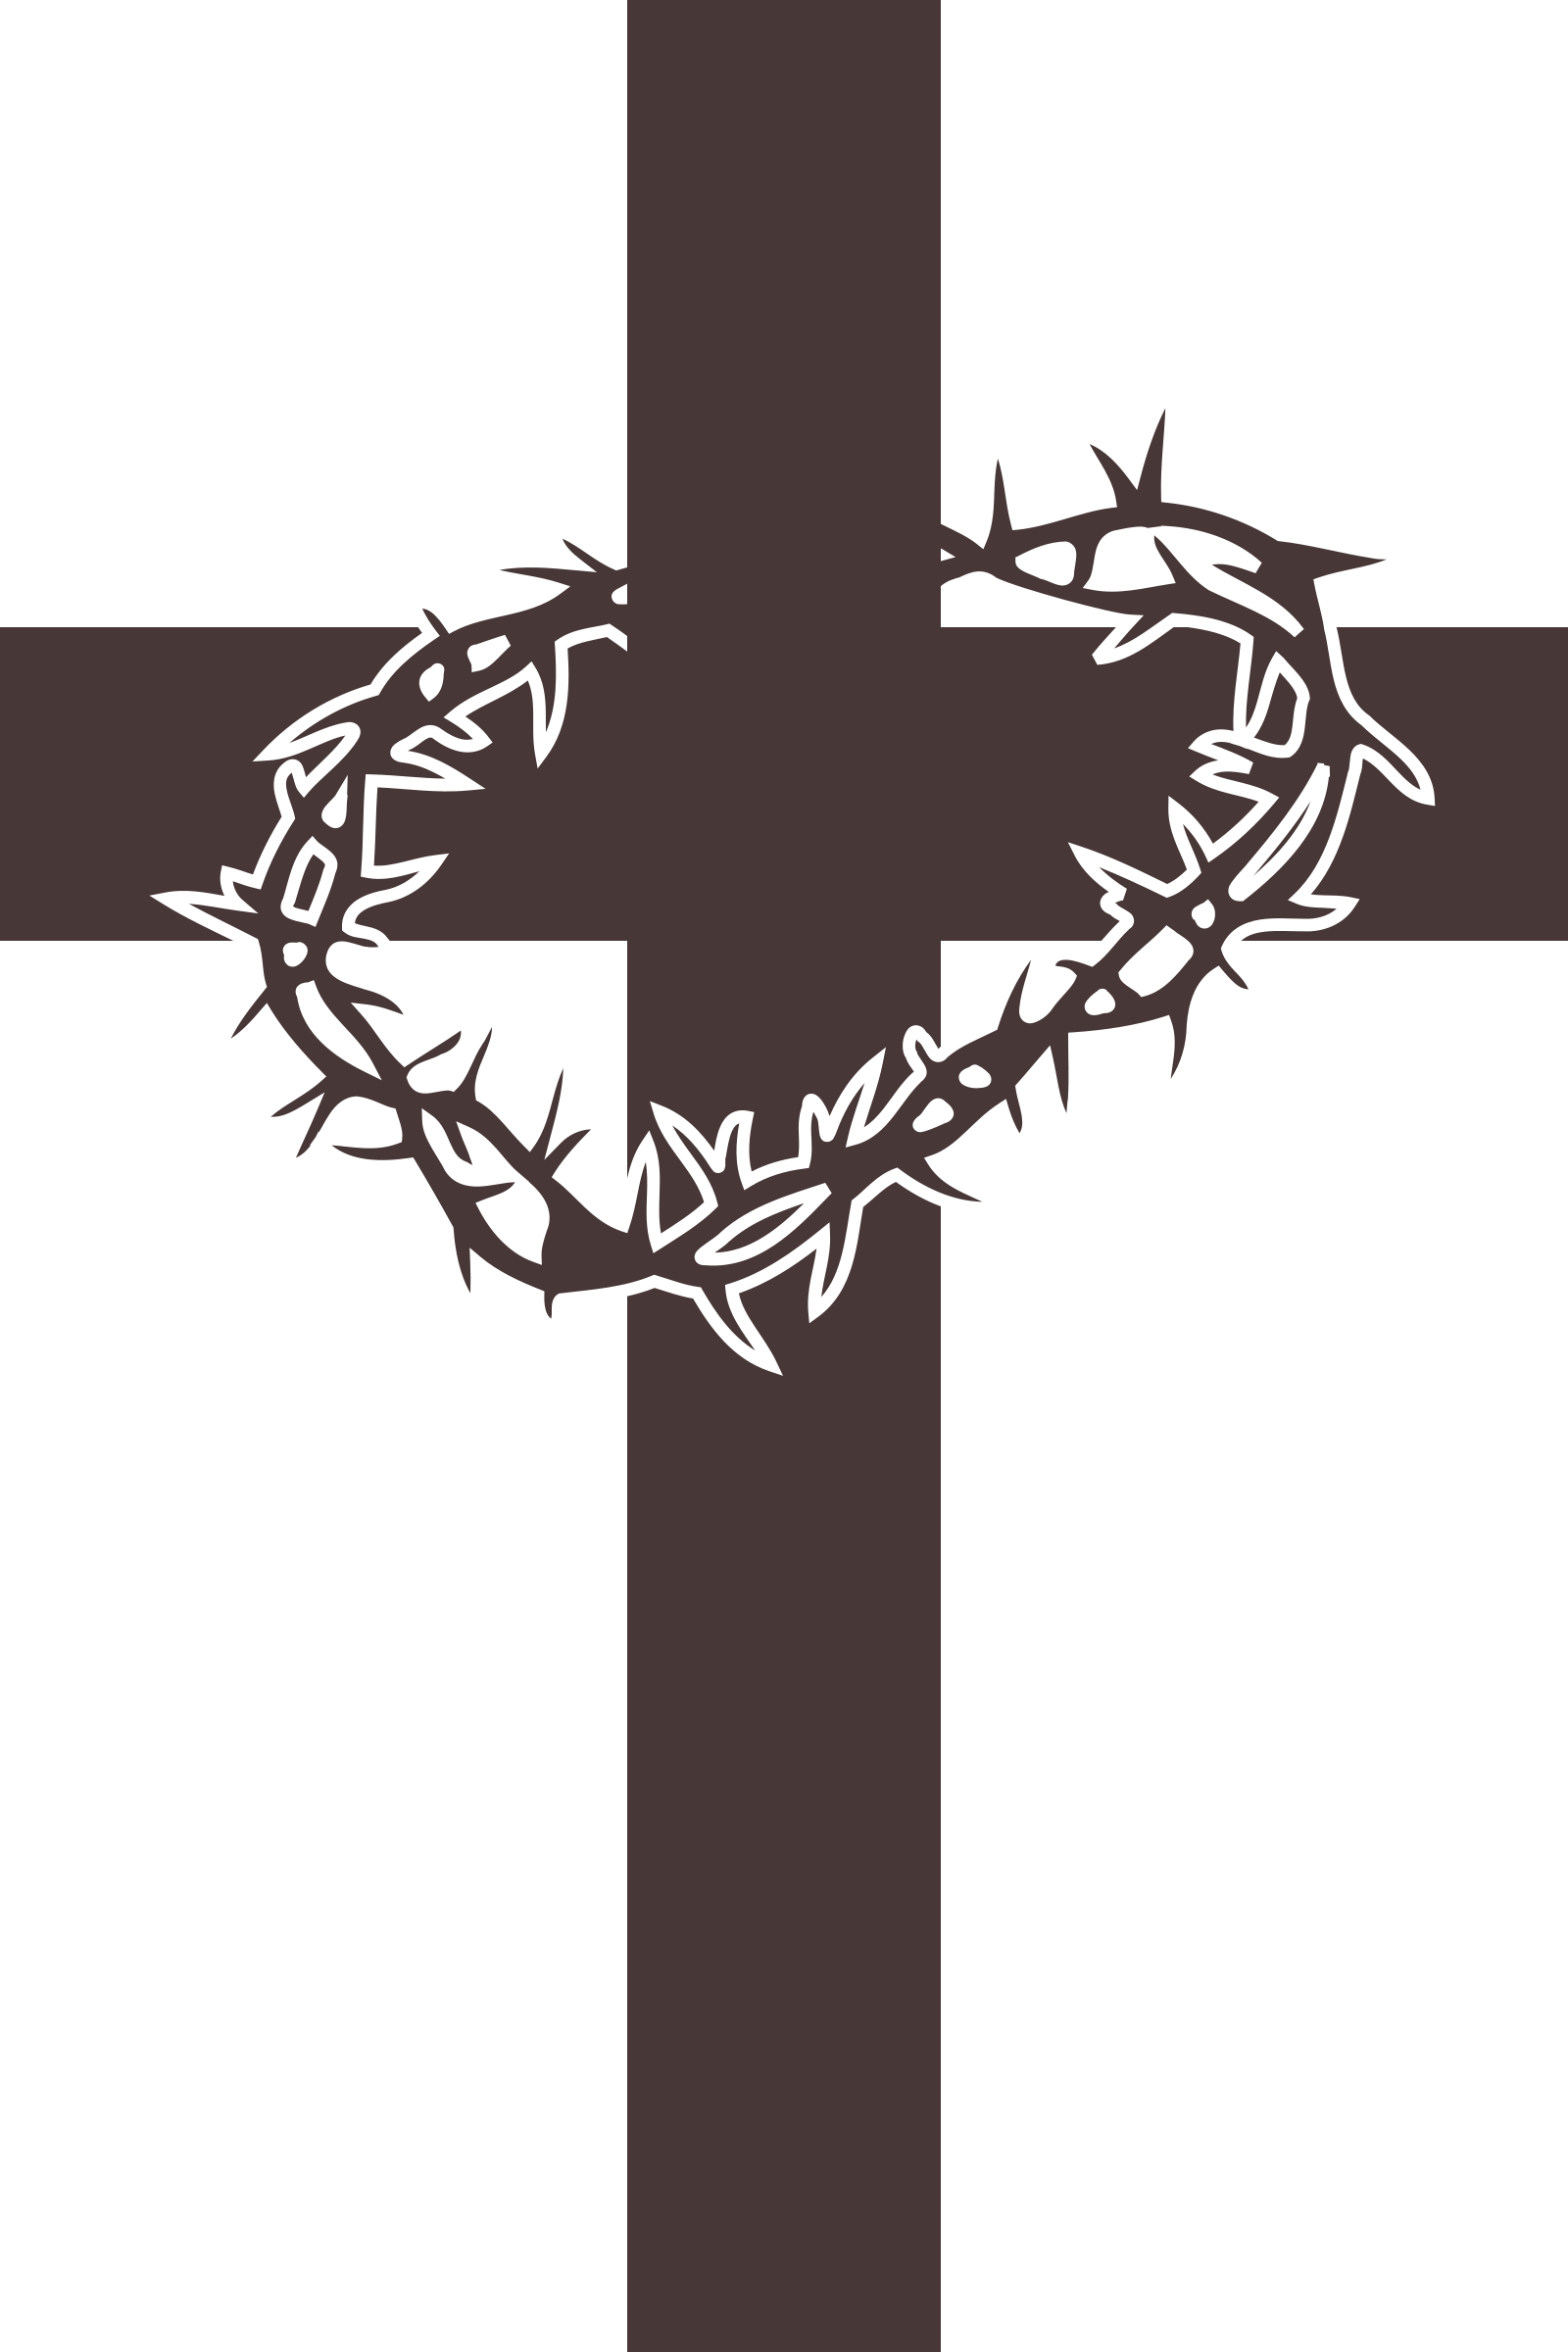 Holy week clipart crown thorns. Services peace lutheran church